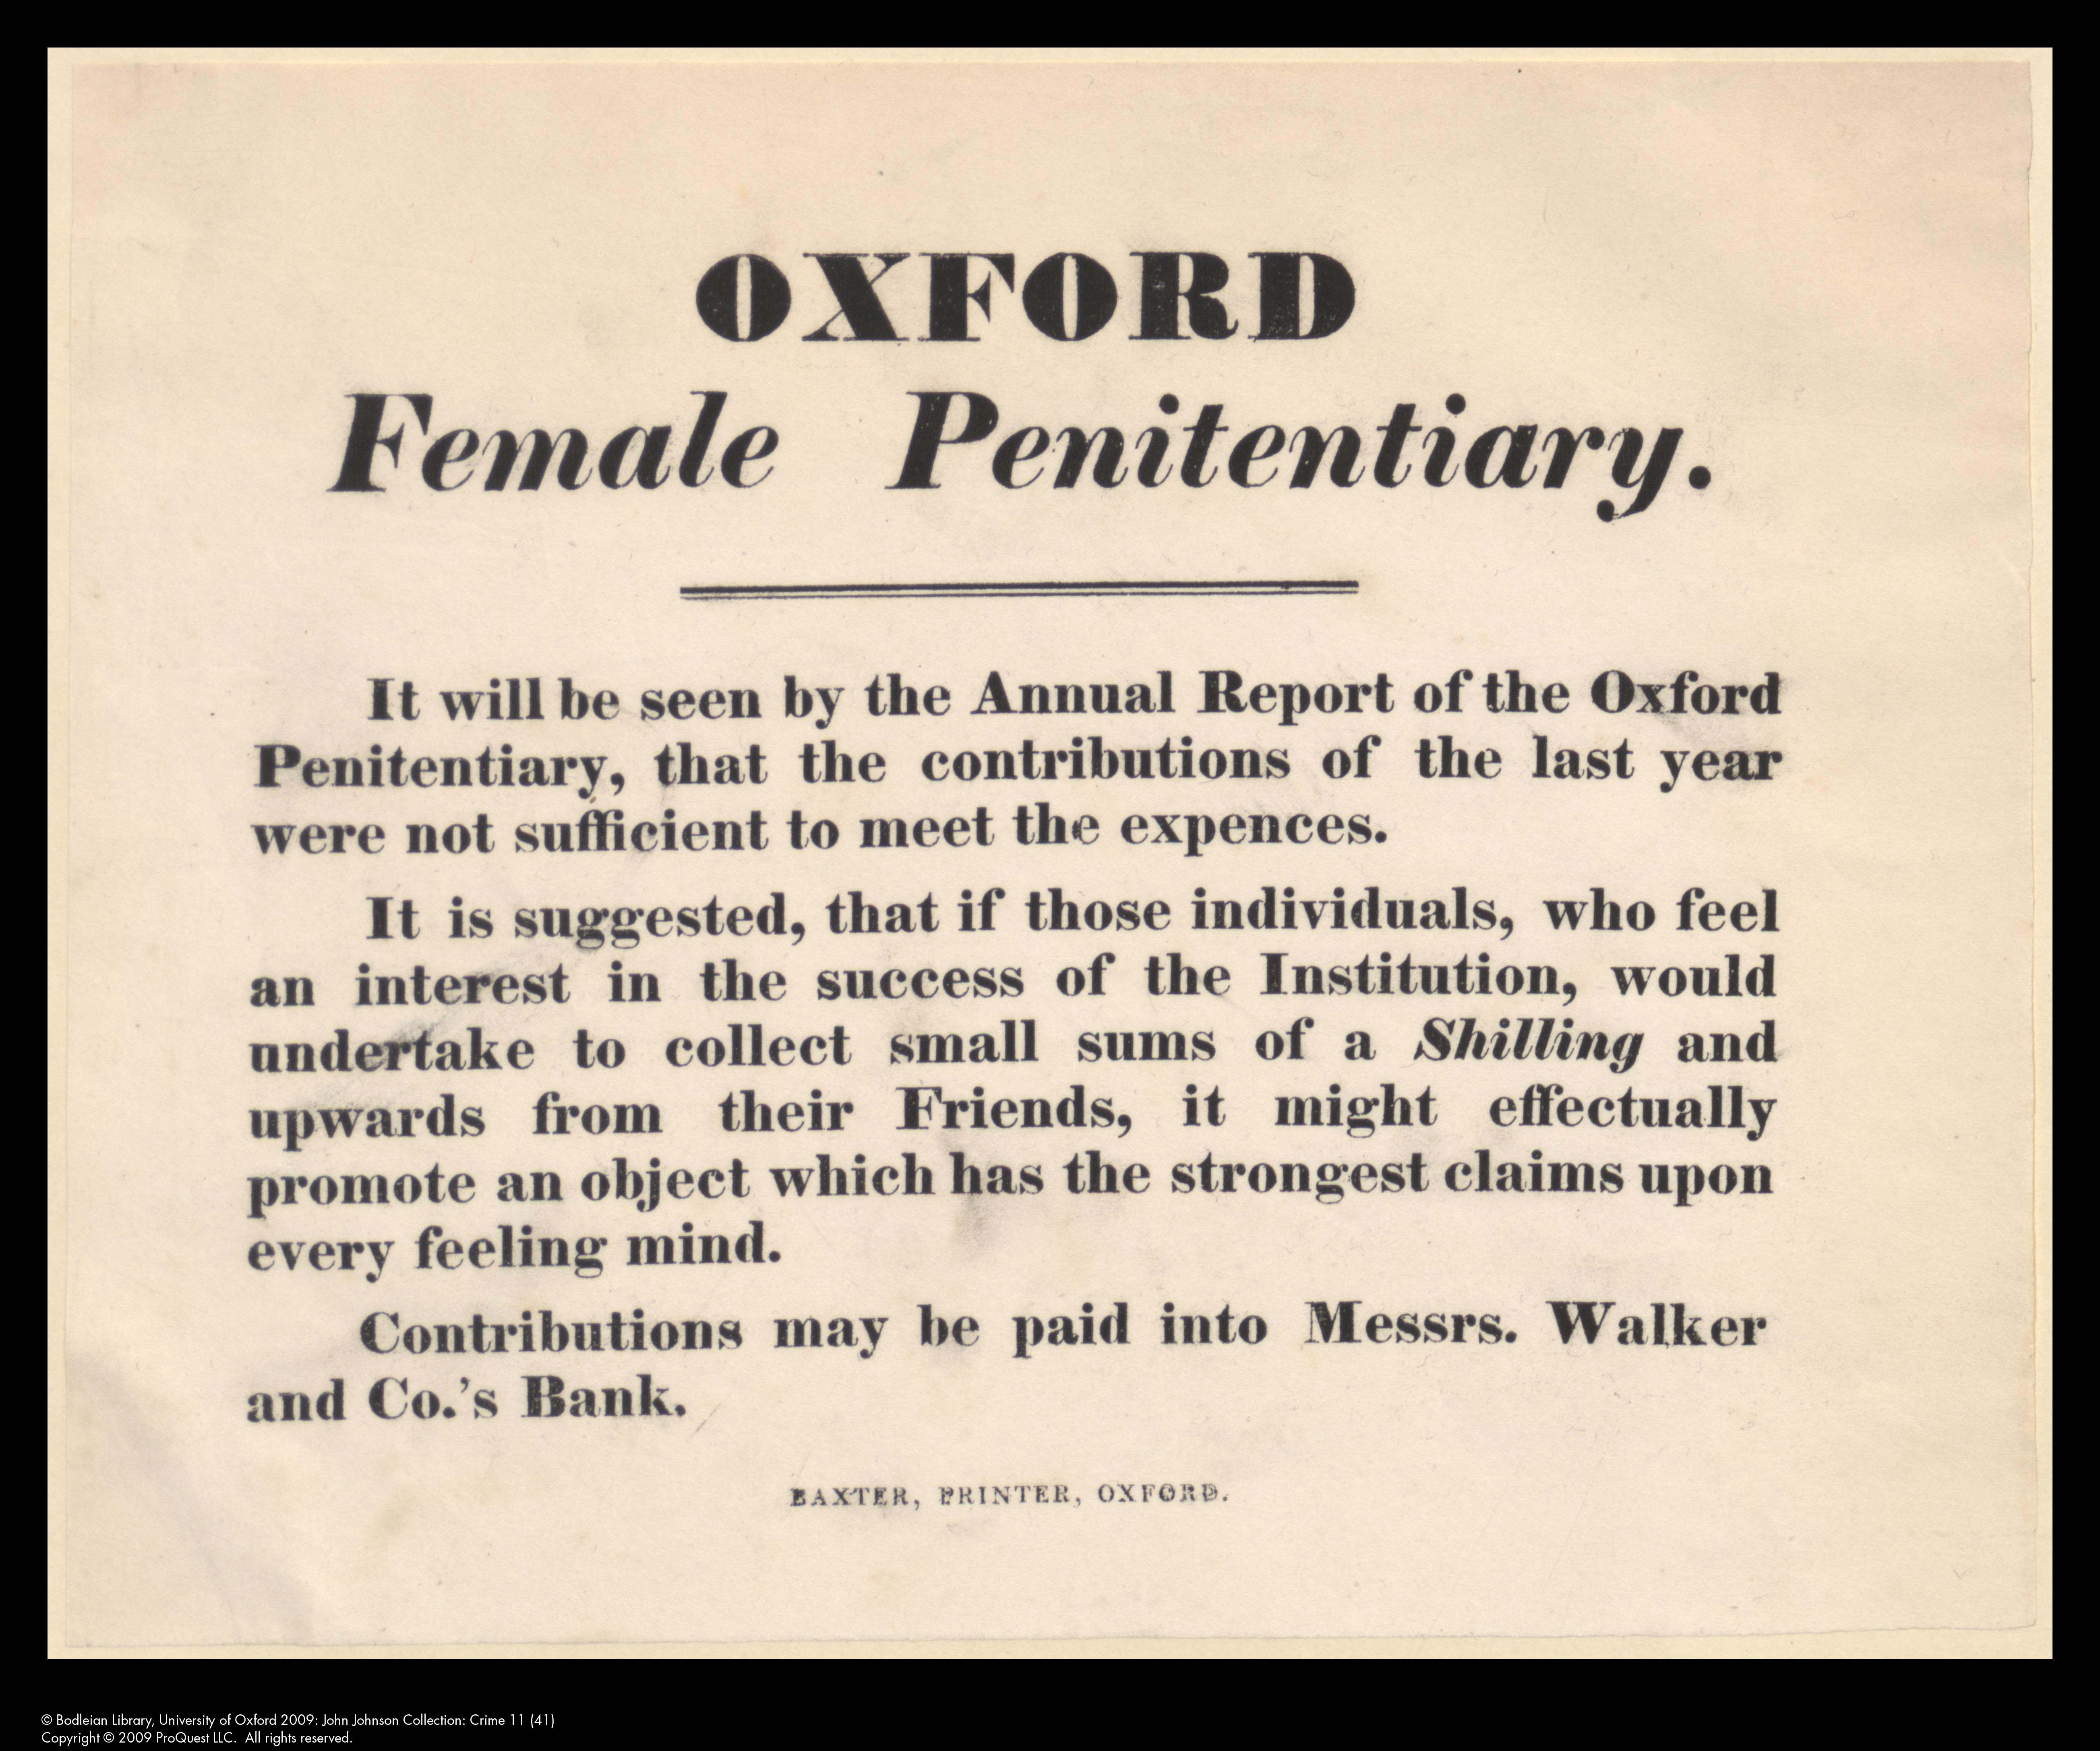 Appeal for funding for Oxford Female Penitentiary